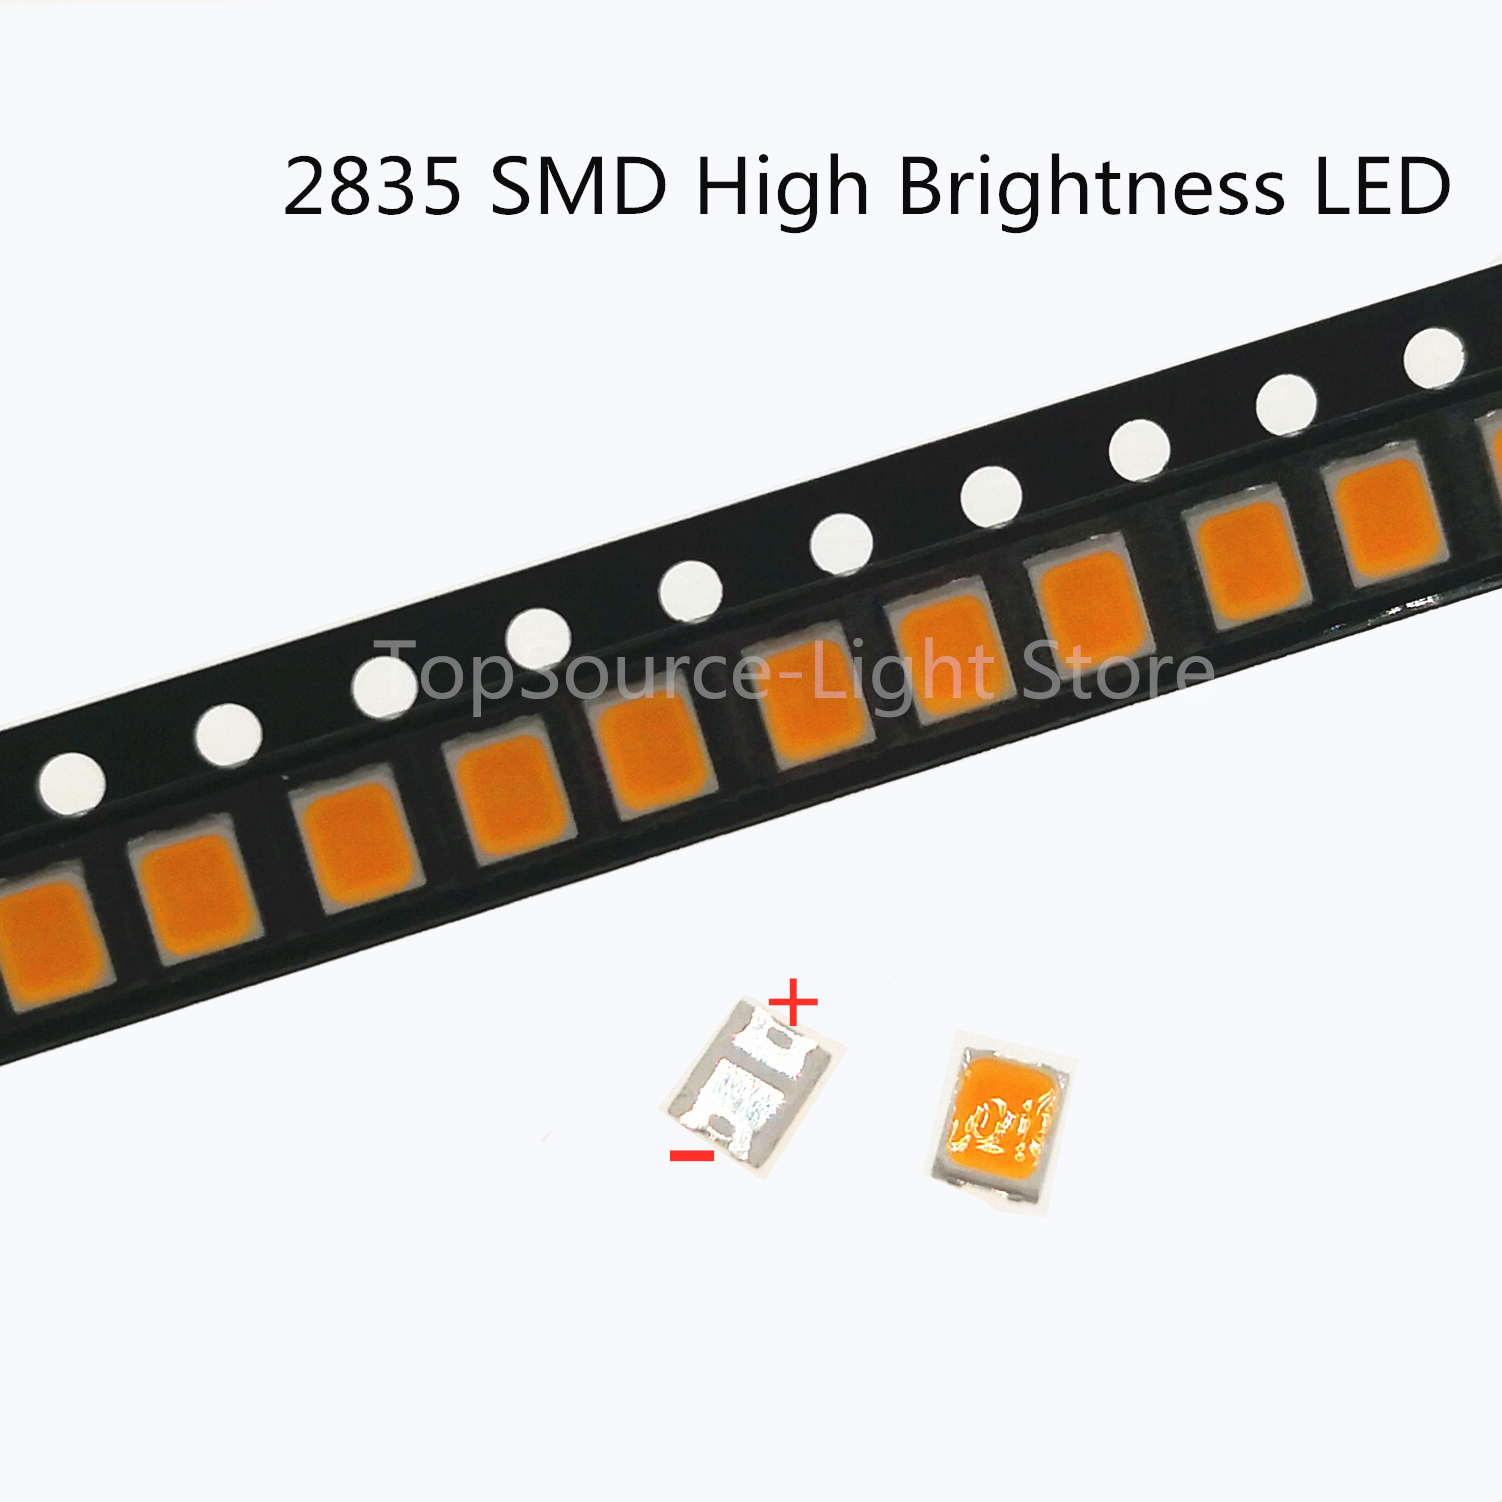 100PCS For Konka Changhong Amoi LCD TV Backlight LED Strip Lights With The East Bay 2835 SMD LED Beads 1W 6V 3528